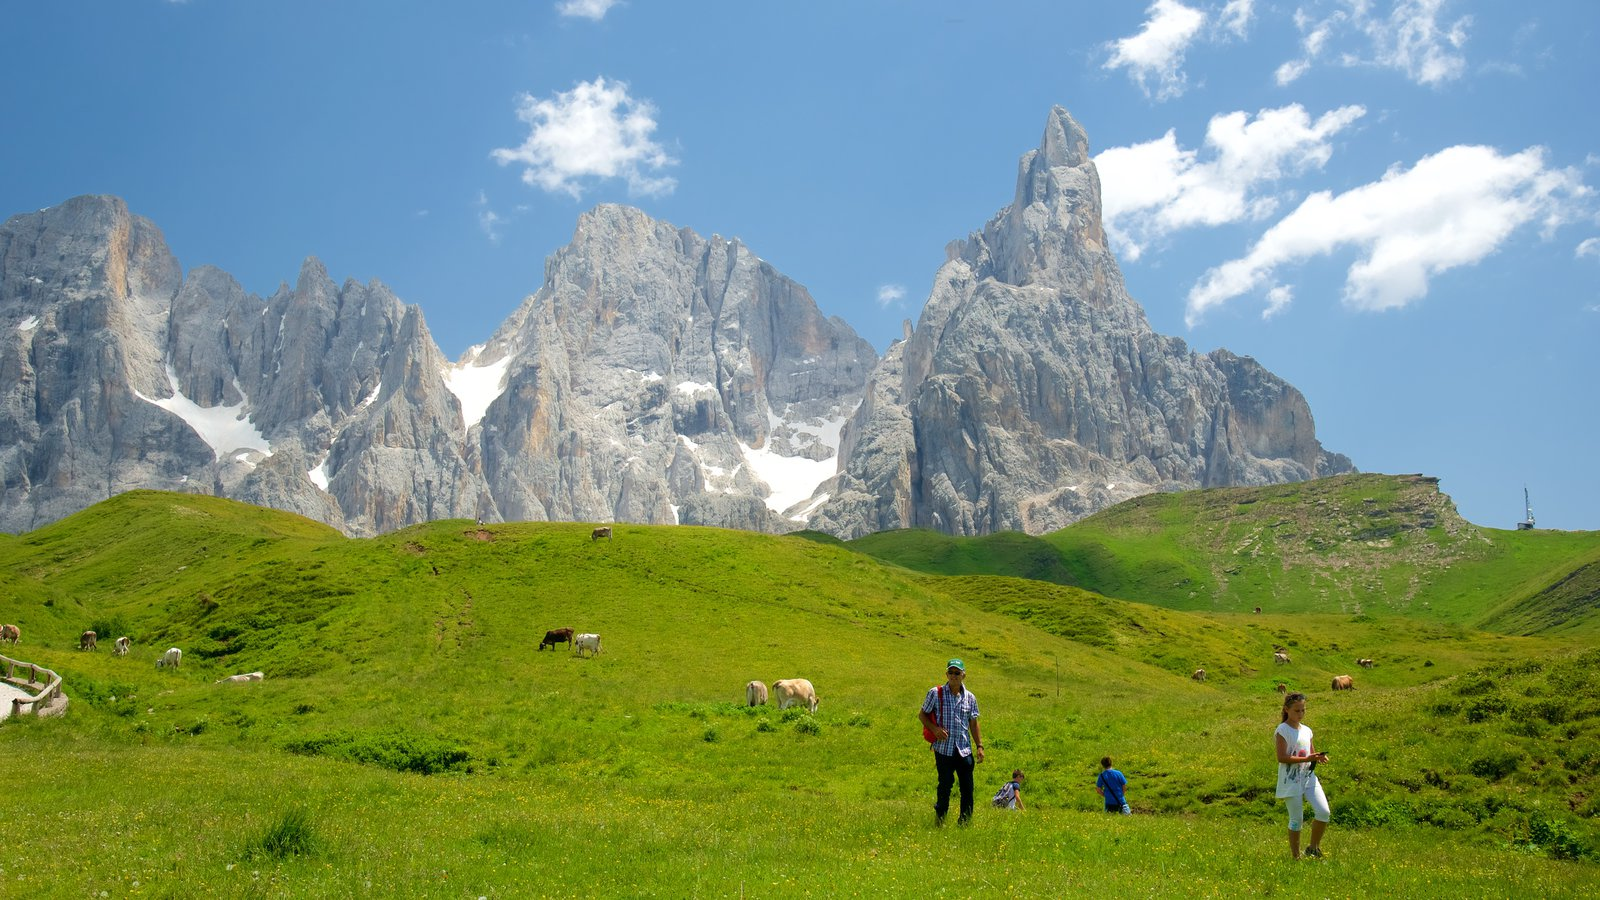 Passo Rolle which includes mountains and land animals as well as a small group of people